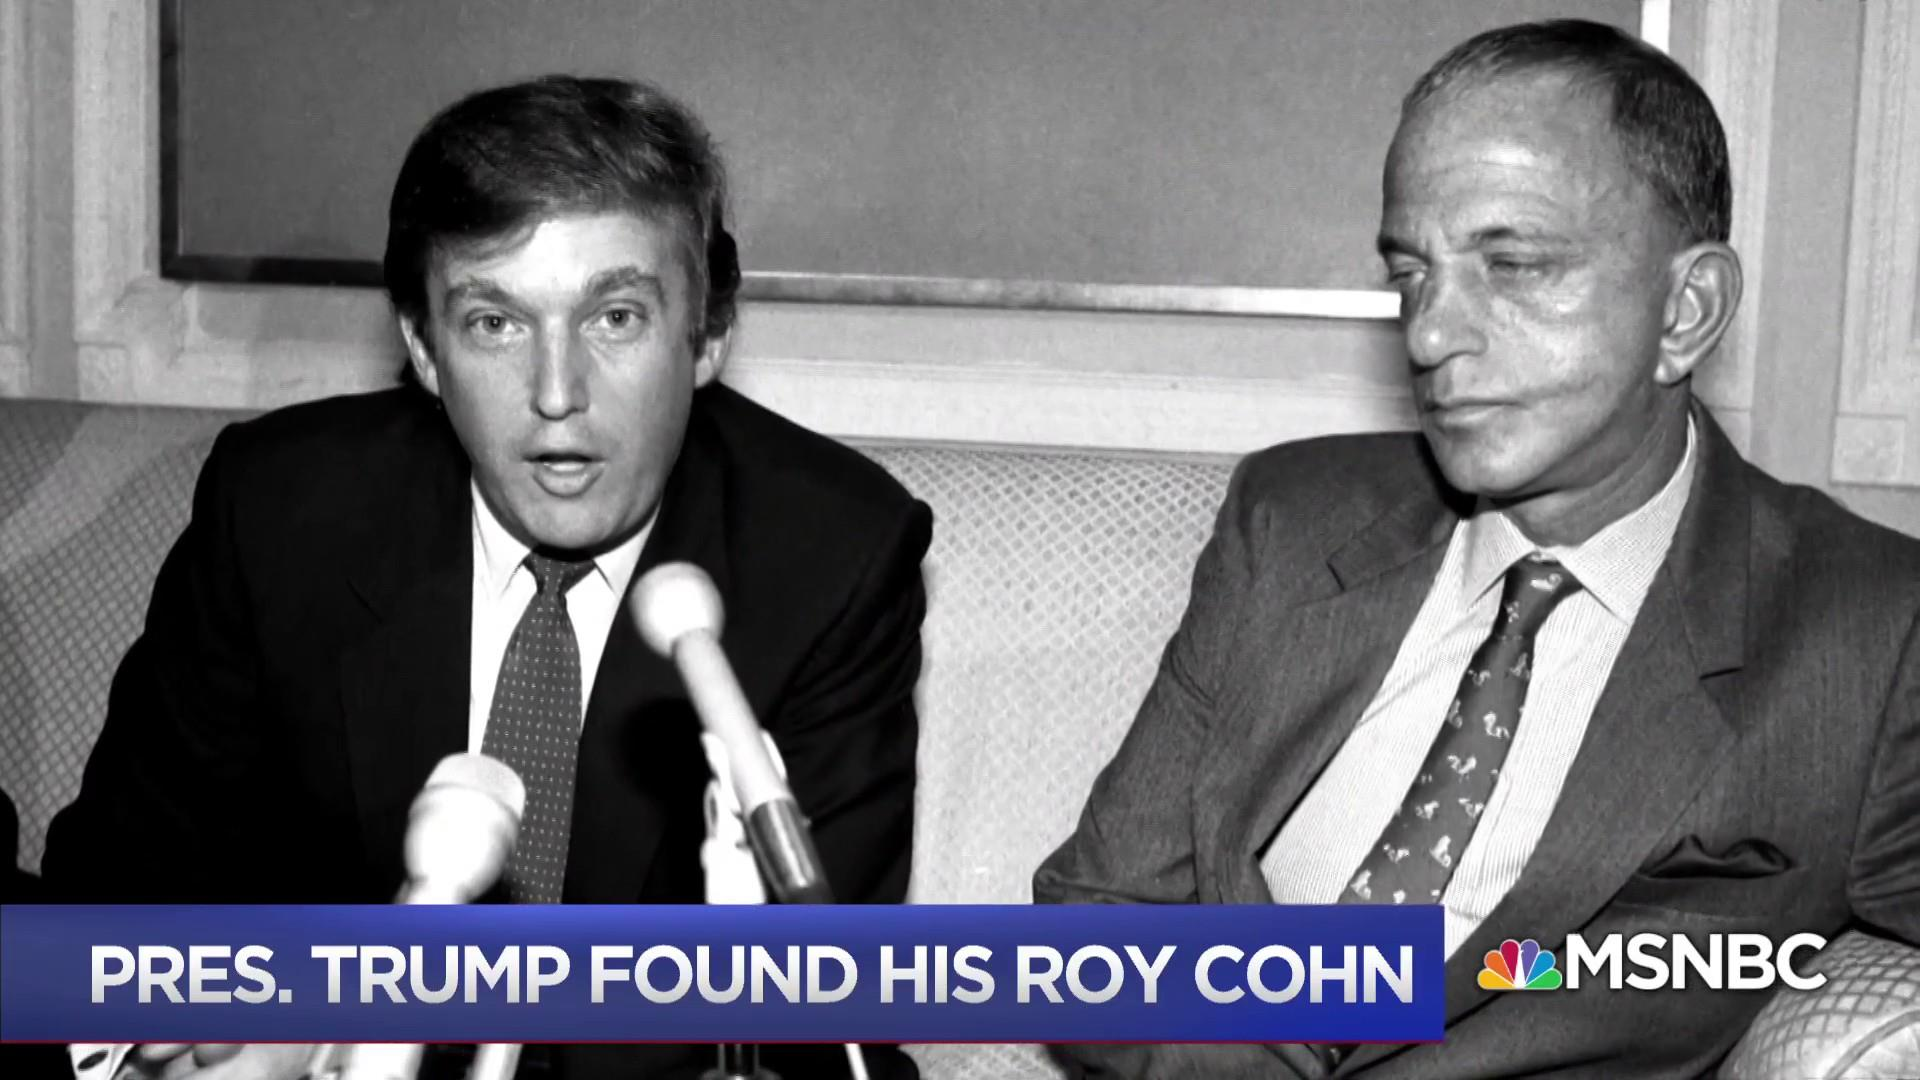 Chris Matthews: Trump finally found his Roy Cohn